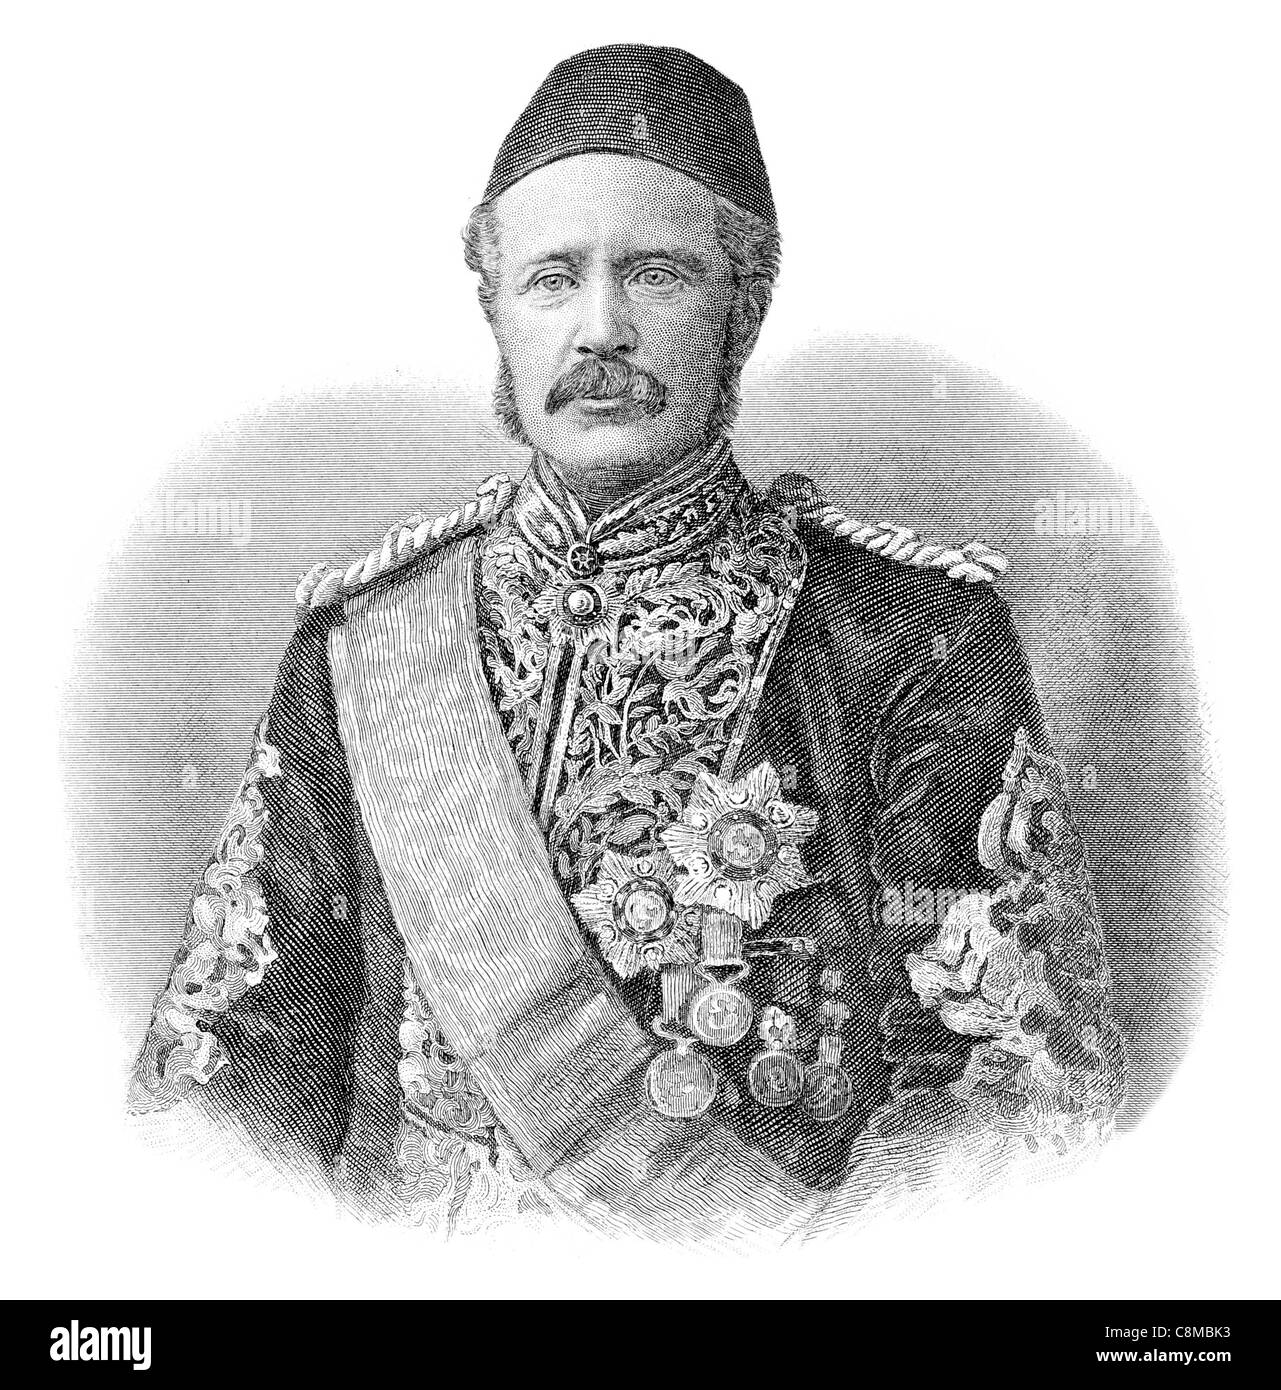 Major-General Charles George Gordon 1833 1885 Chinese Pasha Khartoum British army officer Royal Engineers administrator - Stock Image